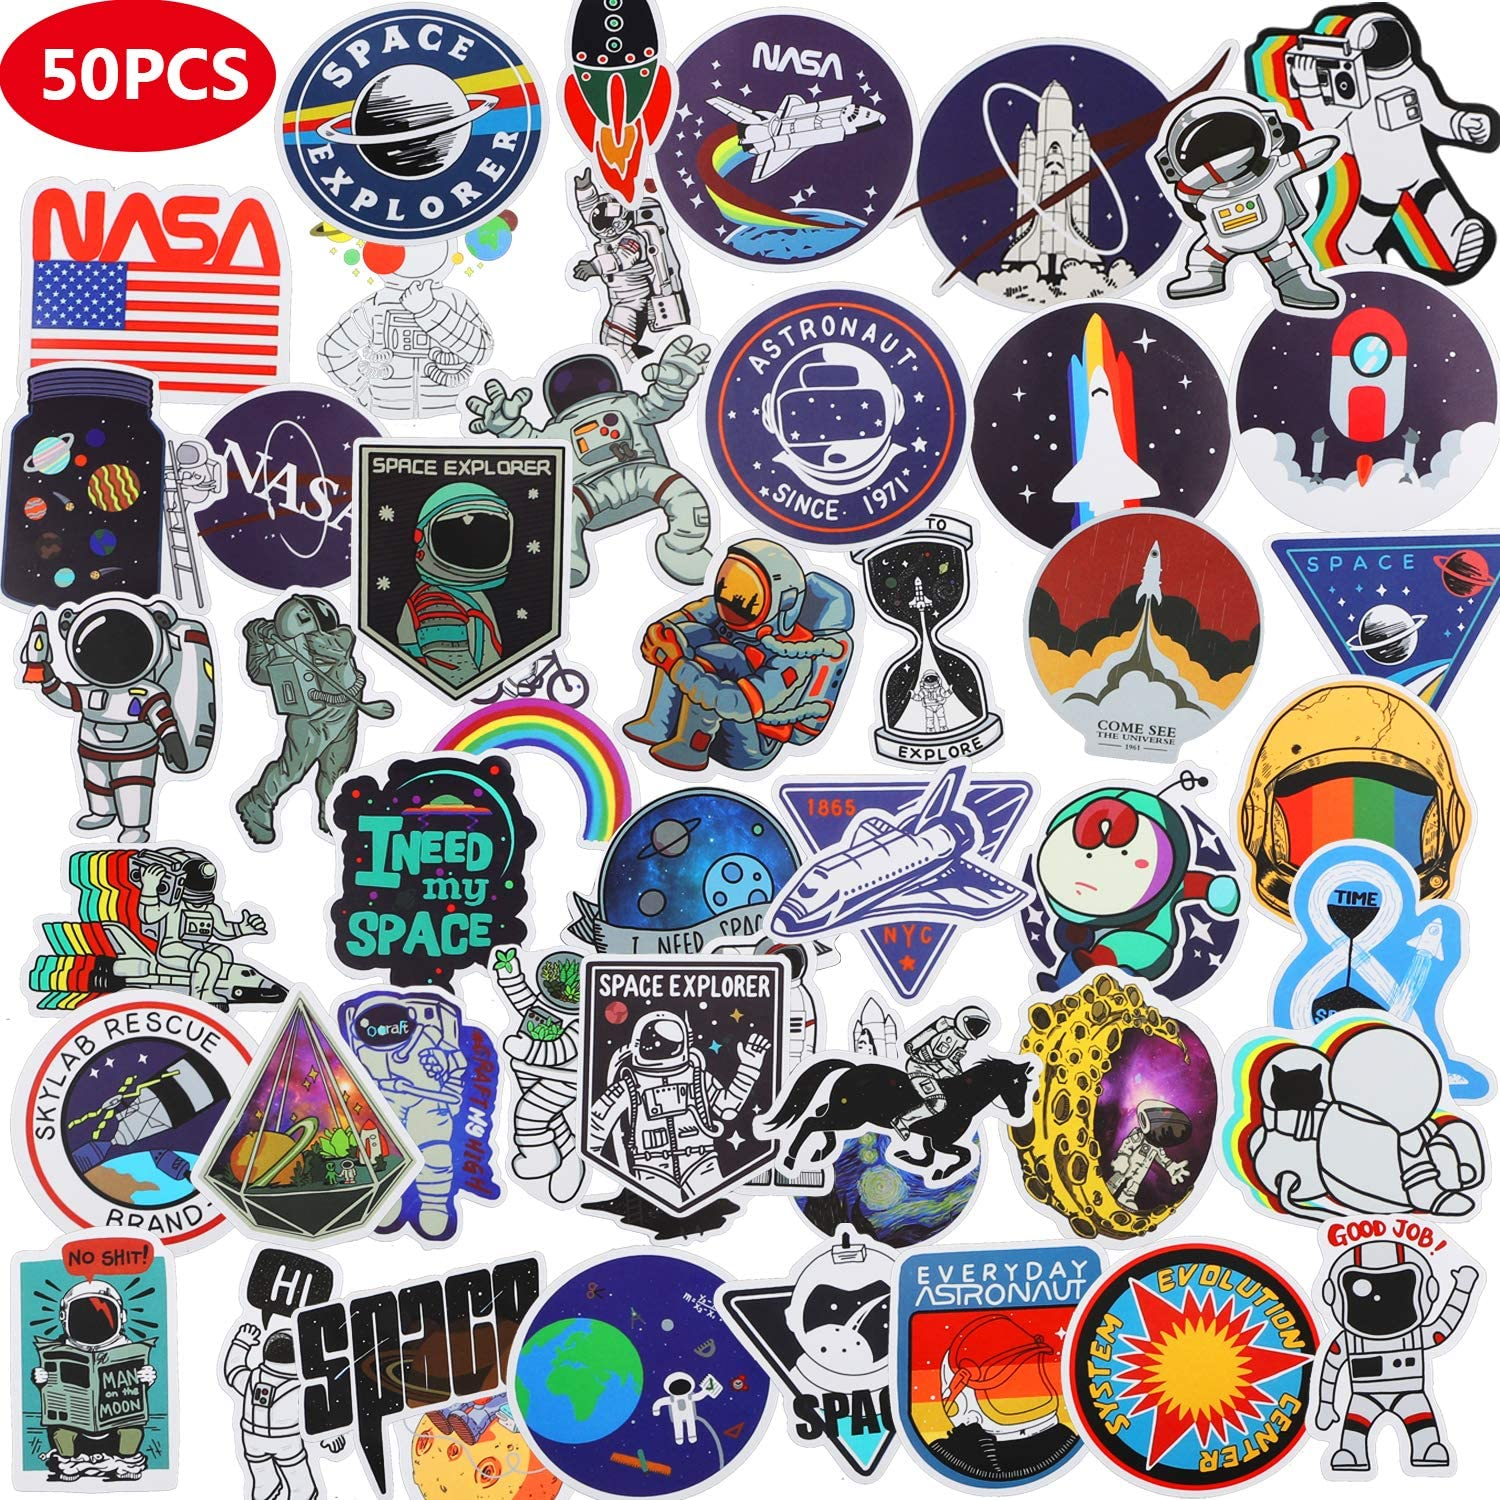 CHANSBO NASA Space Explorer (50 Pack), Waterproof Vinyl VSCO Stickers Cartoon Anime Stickers Astronaut Spaceman Spacecraft Universe Decals for Laptop Skateboard Water Bottles Hydro Flask Luggage